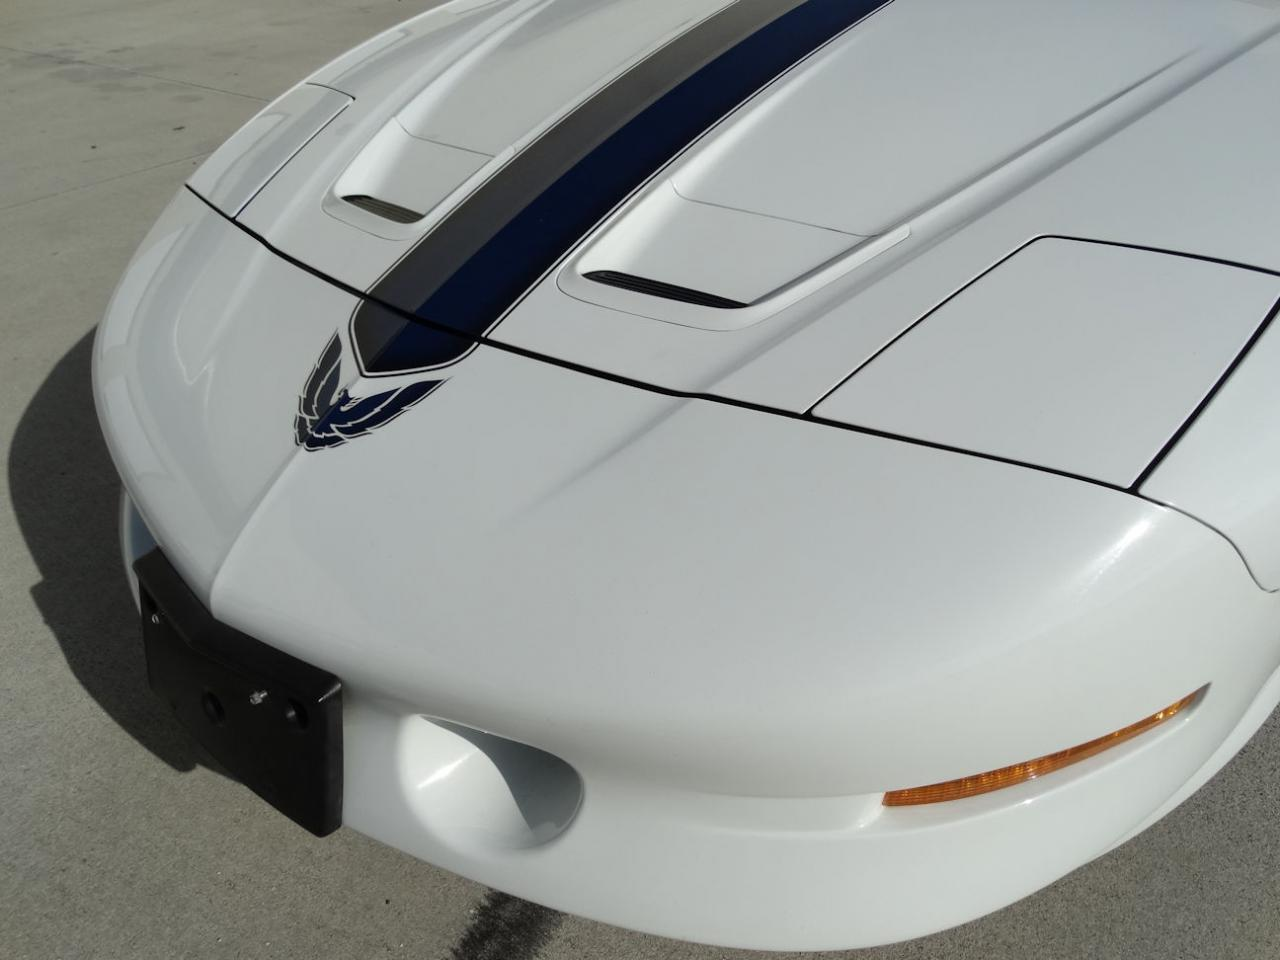 Large Picture of 1994 Pontiac Firebird located in Florida - $22,595.00 - KXRF